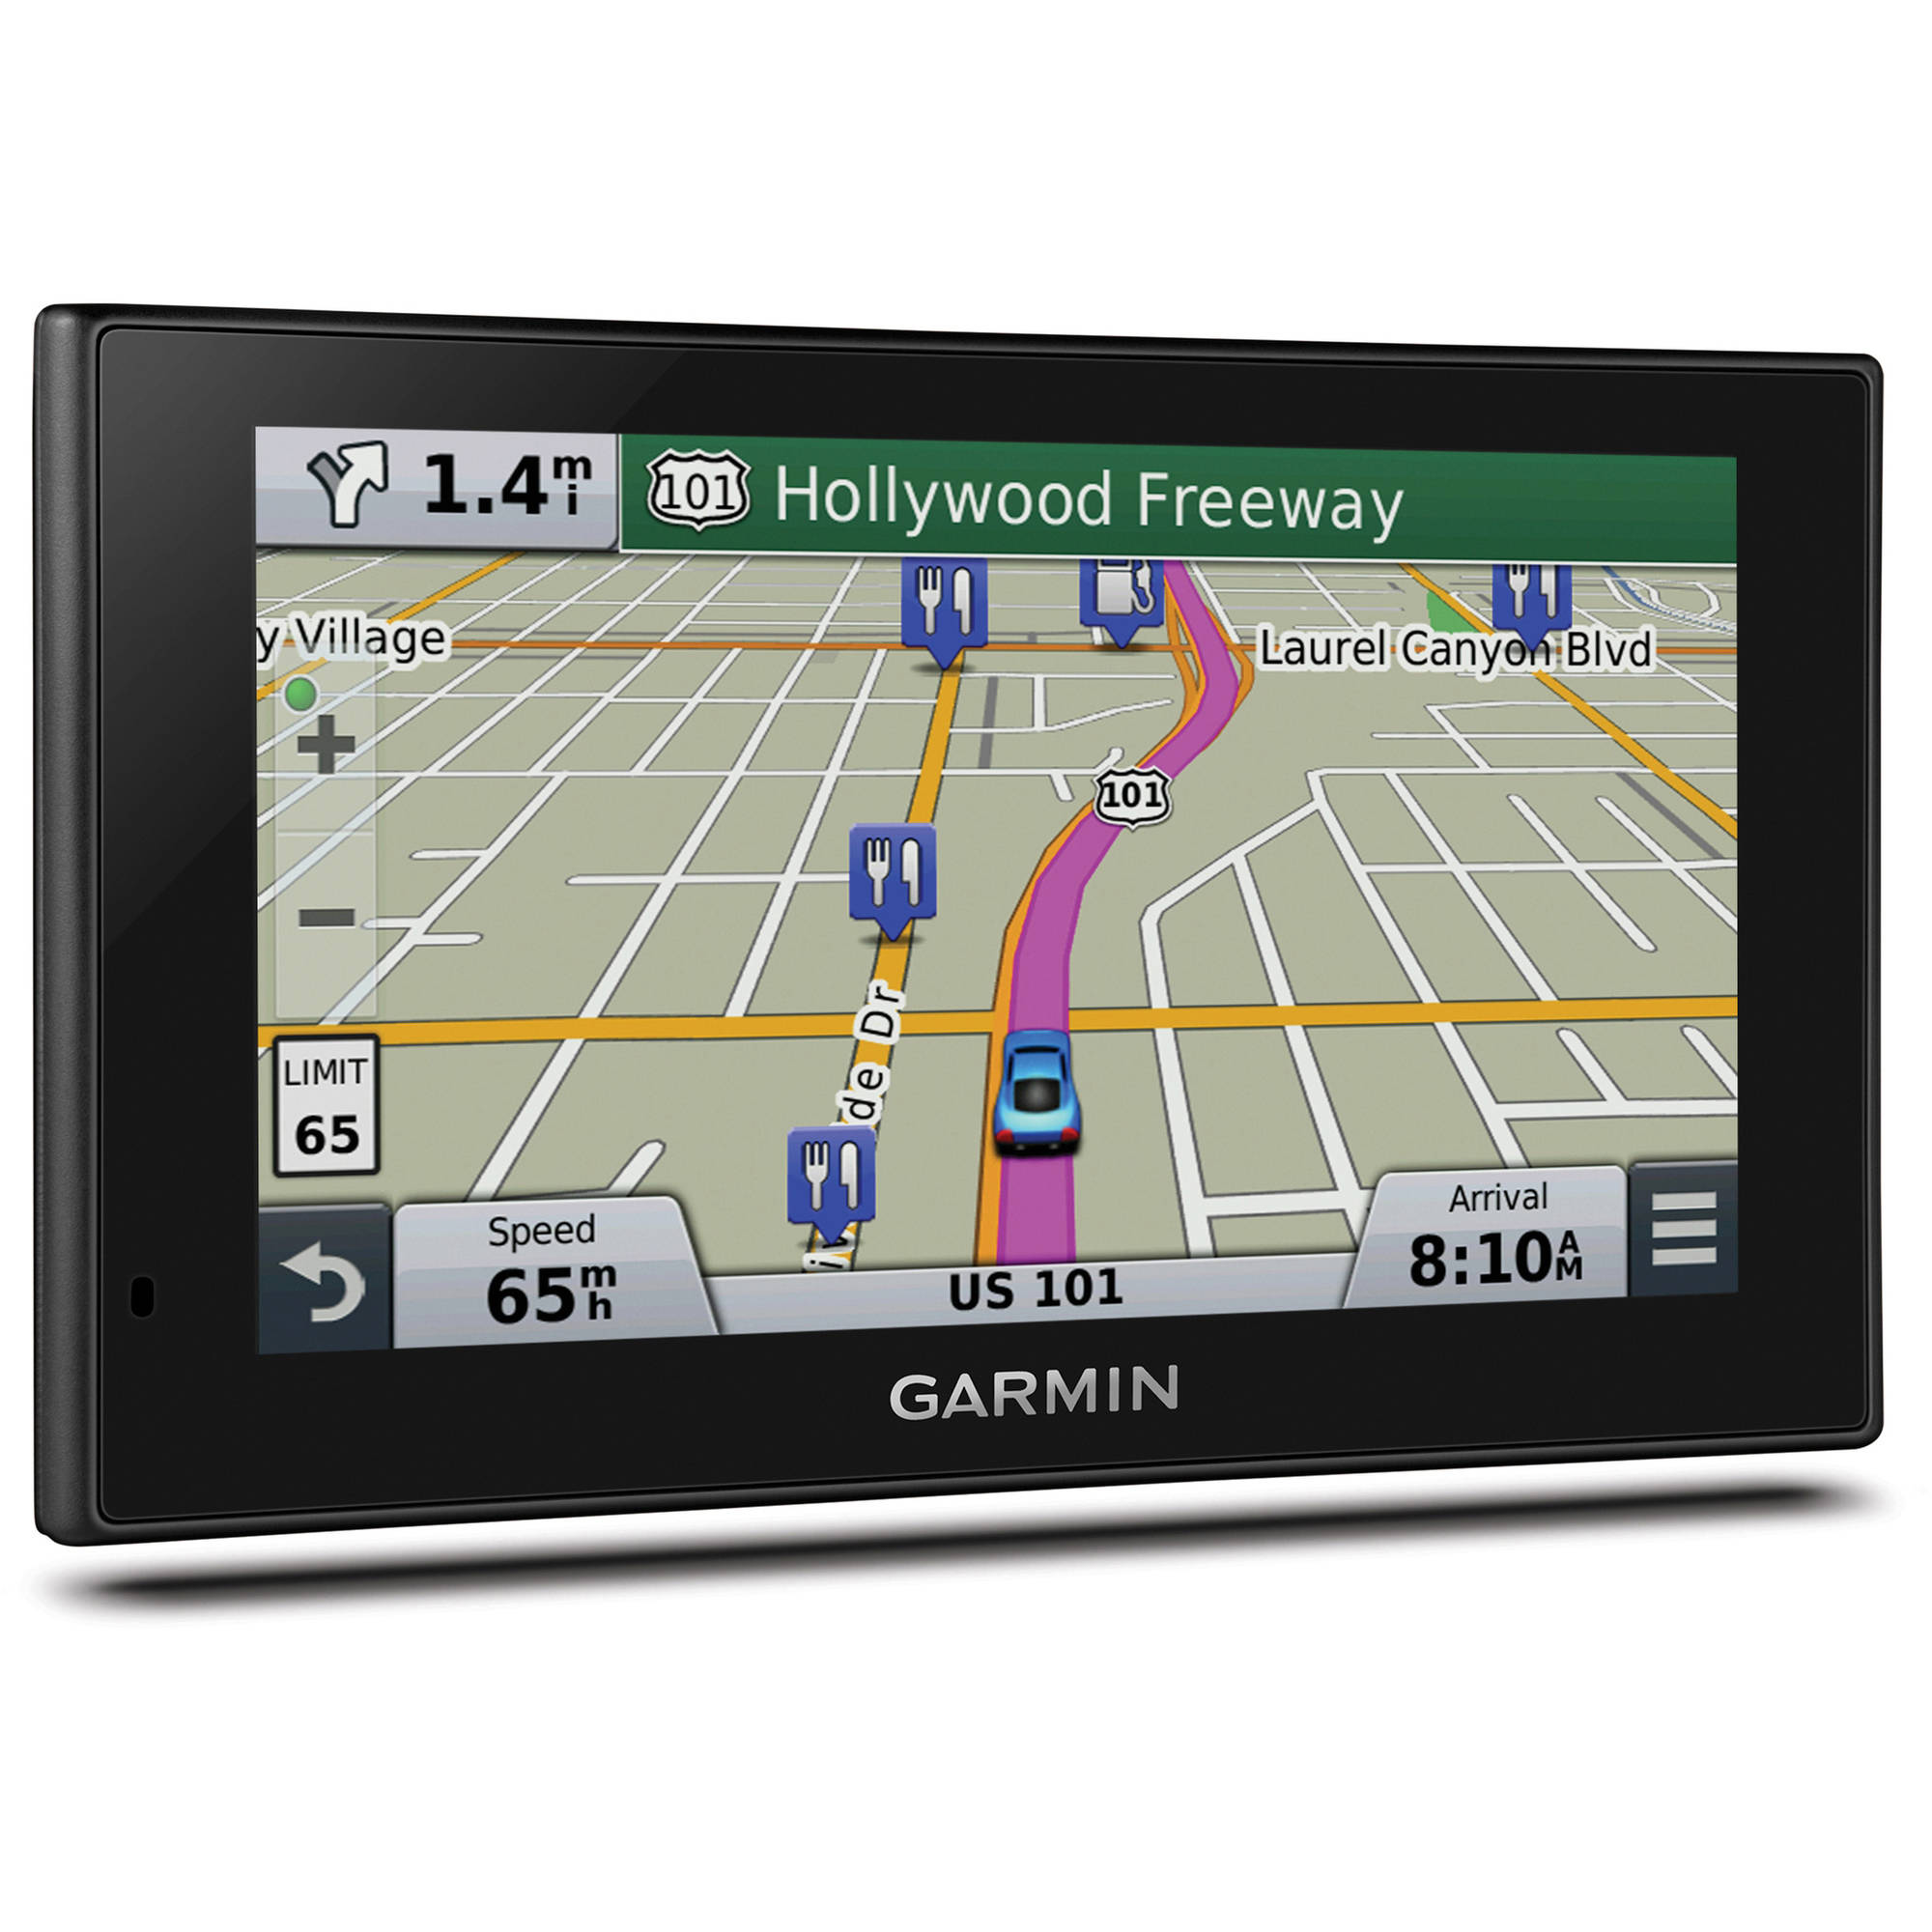 "Garmin nuvi 2789LMT 7"" Travel Assistant with Free Lifetime Maps and Traffic Updates by Garmin"